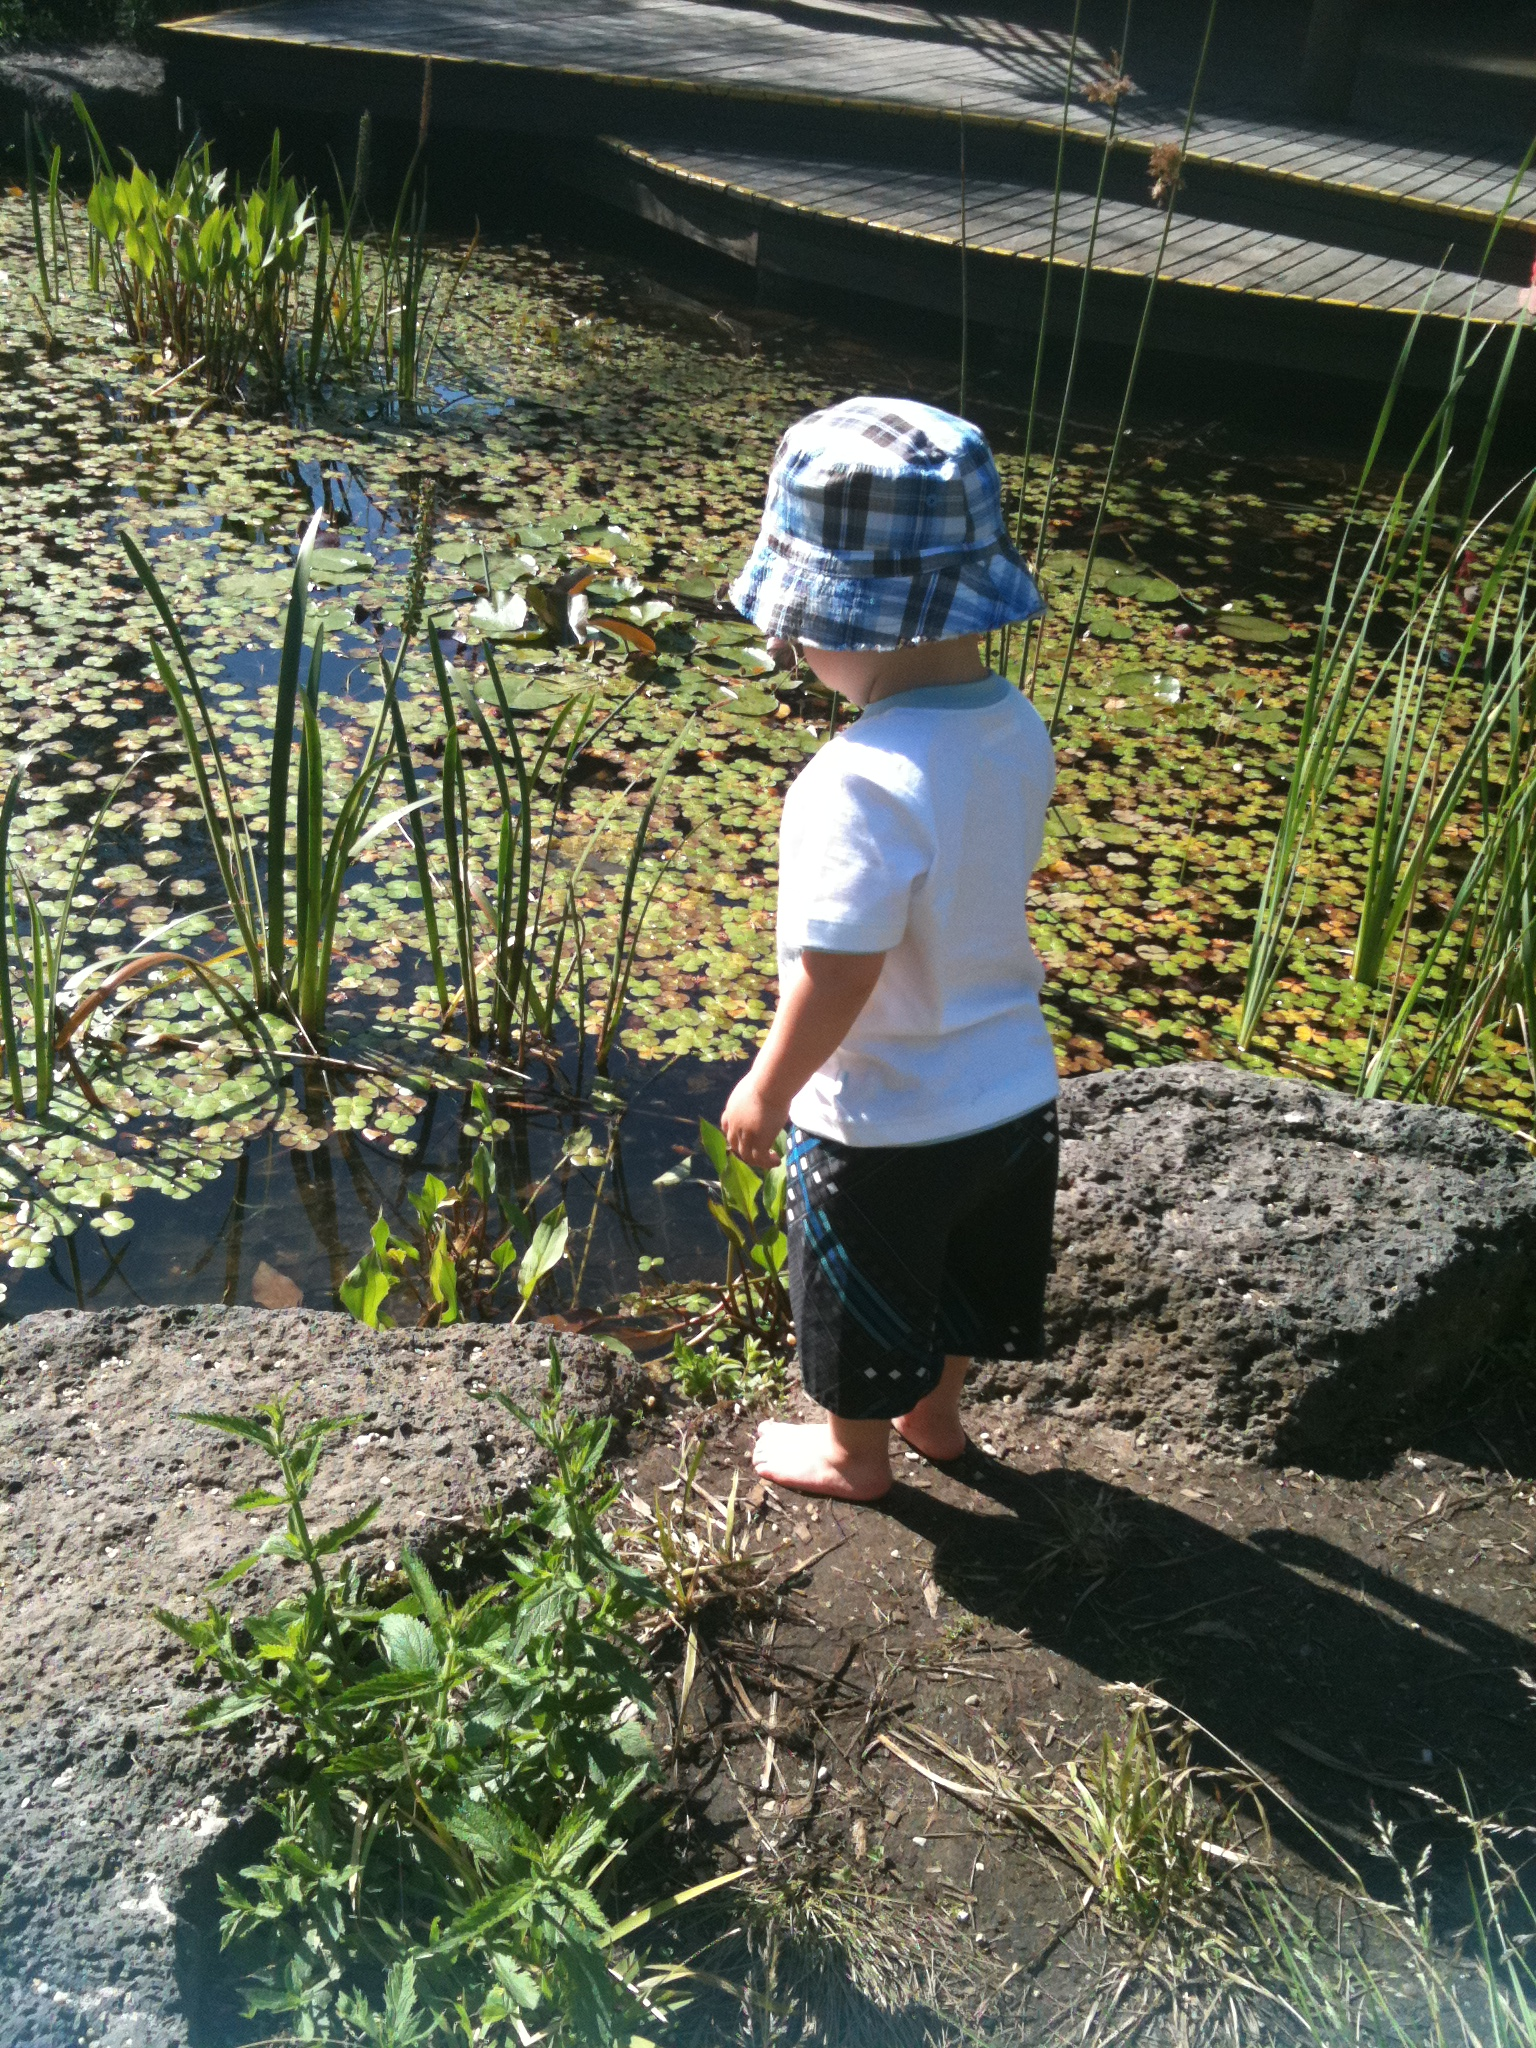 Exploring The Pond